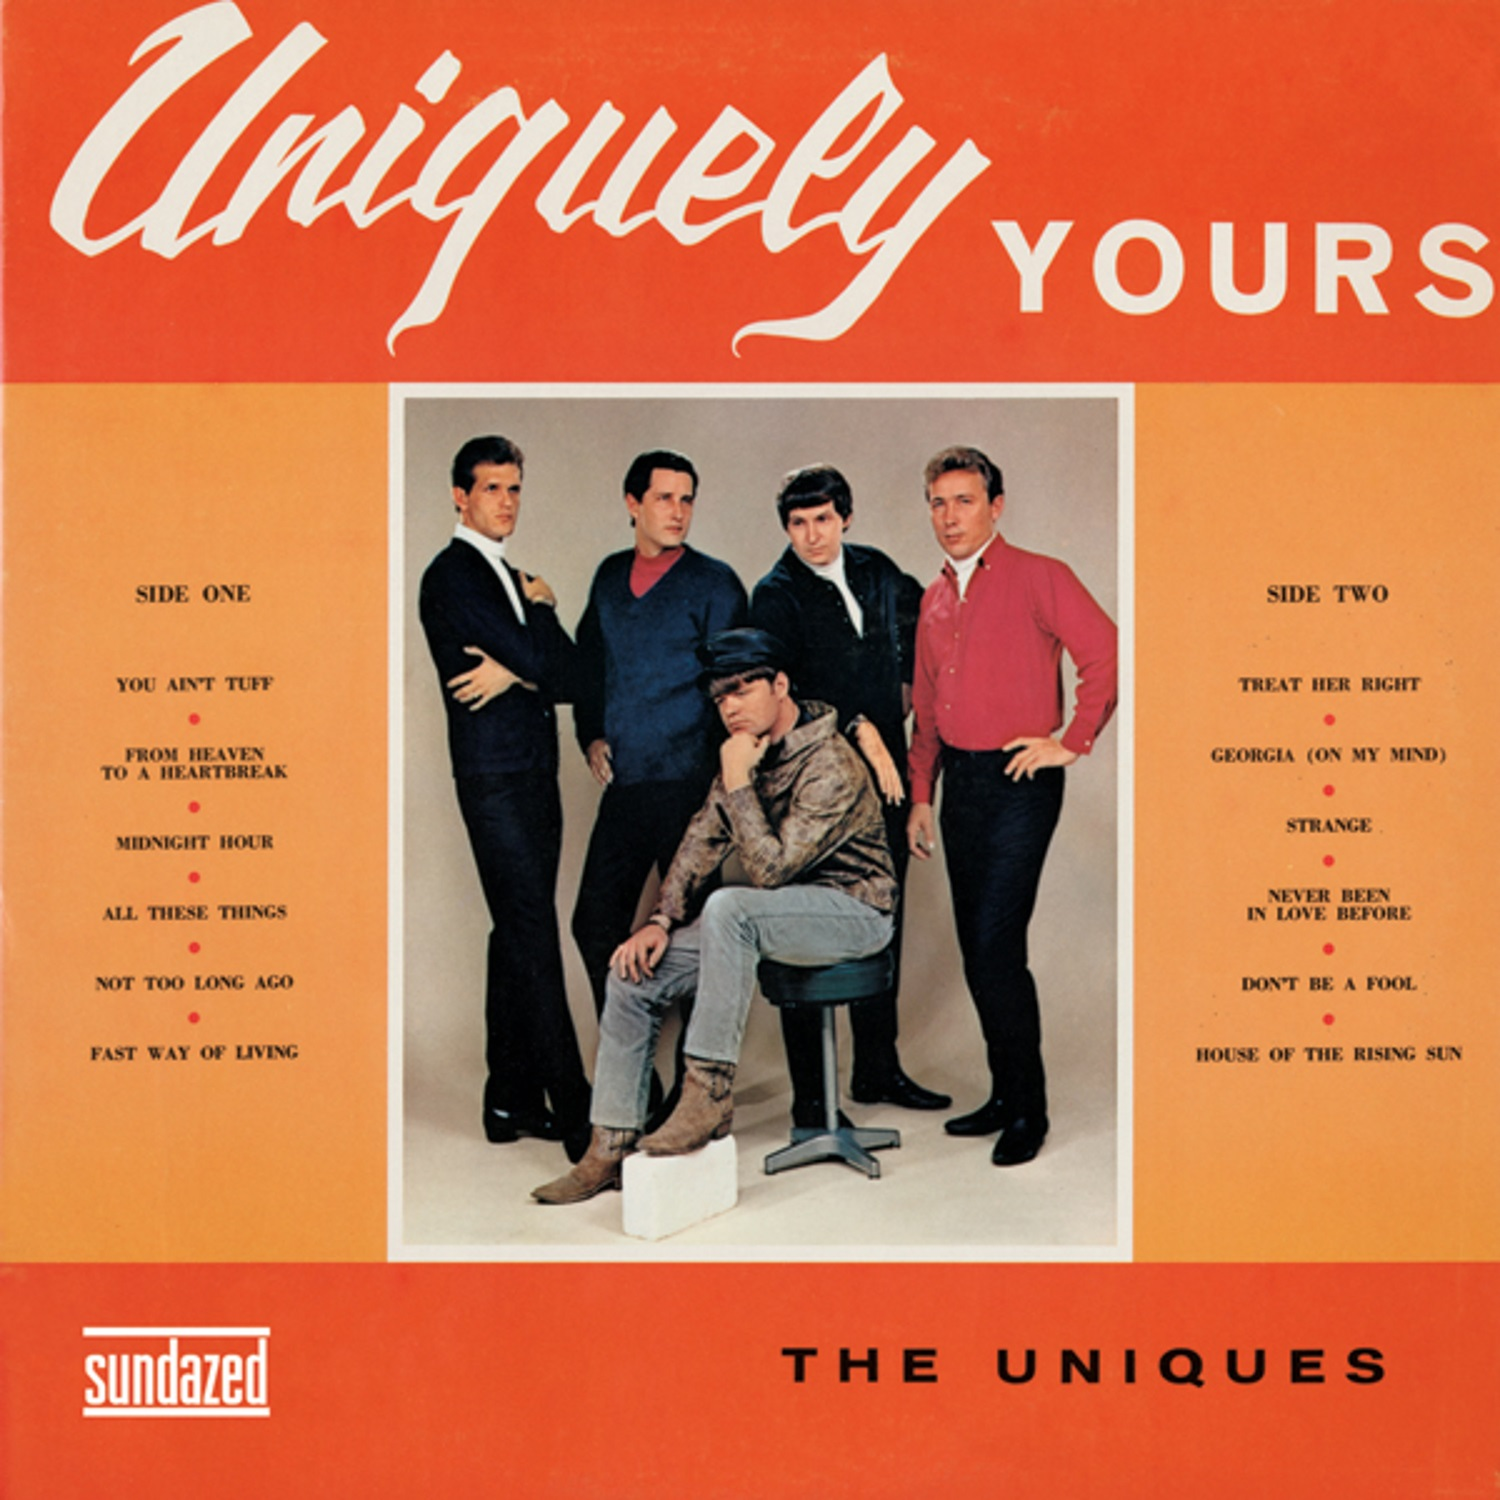 Uniques, The - Uniquely Yours LP